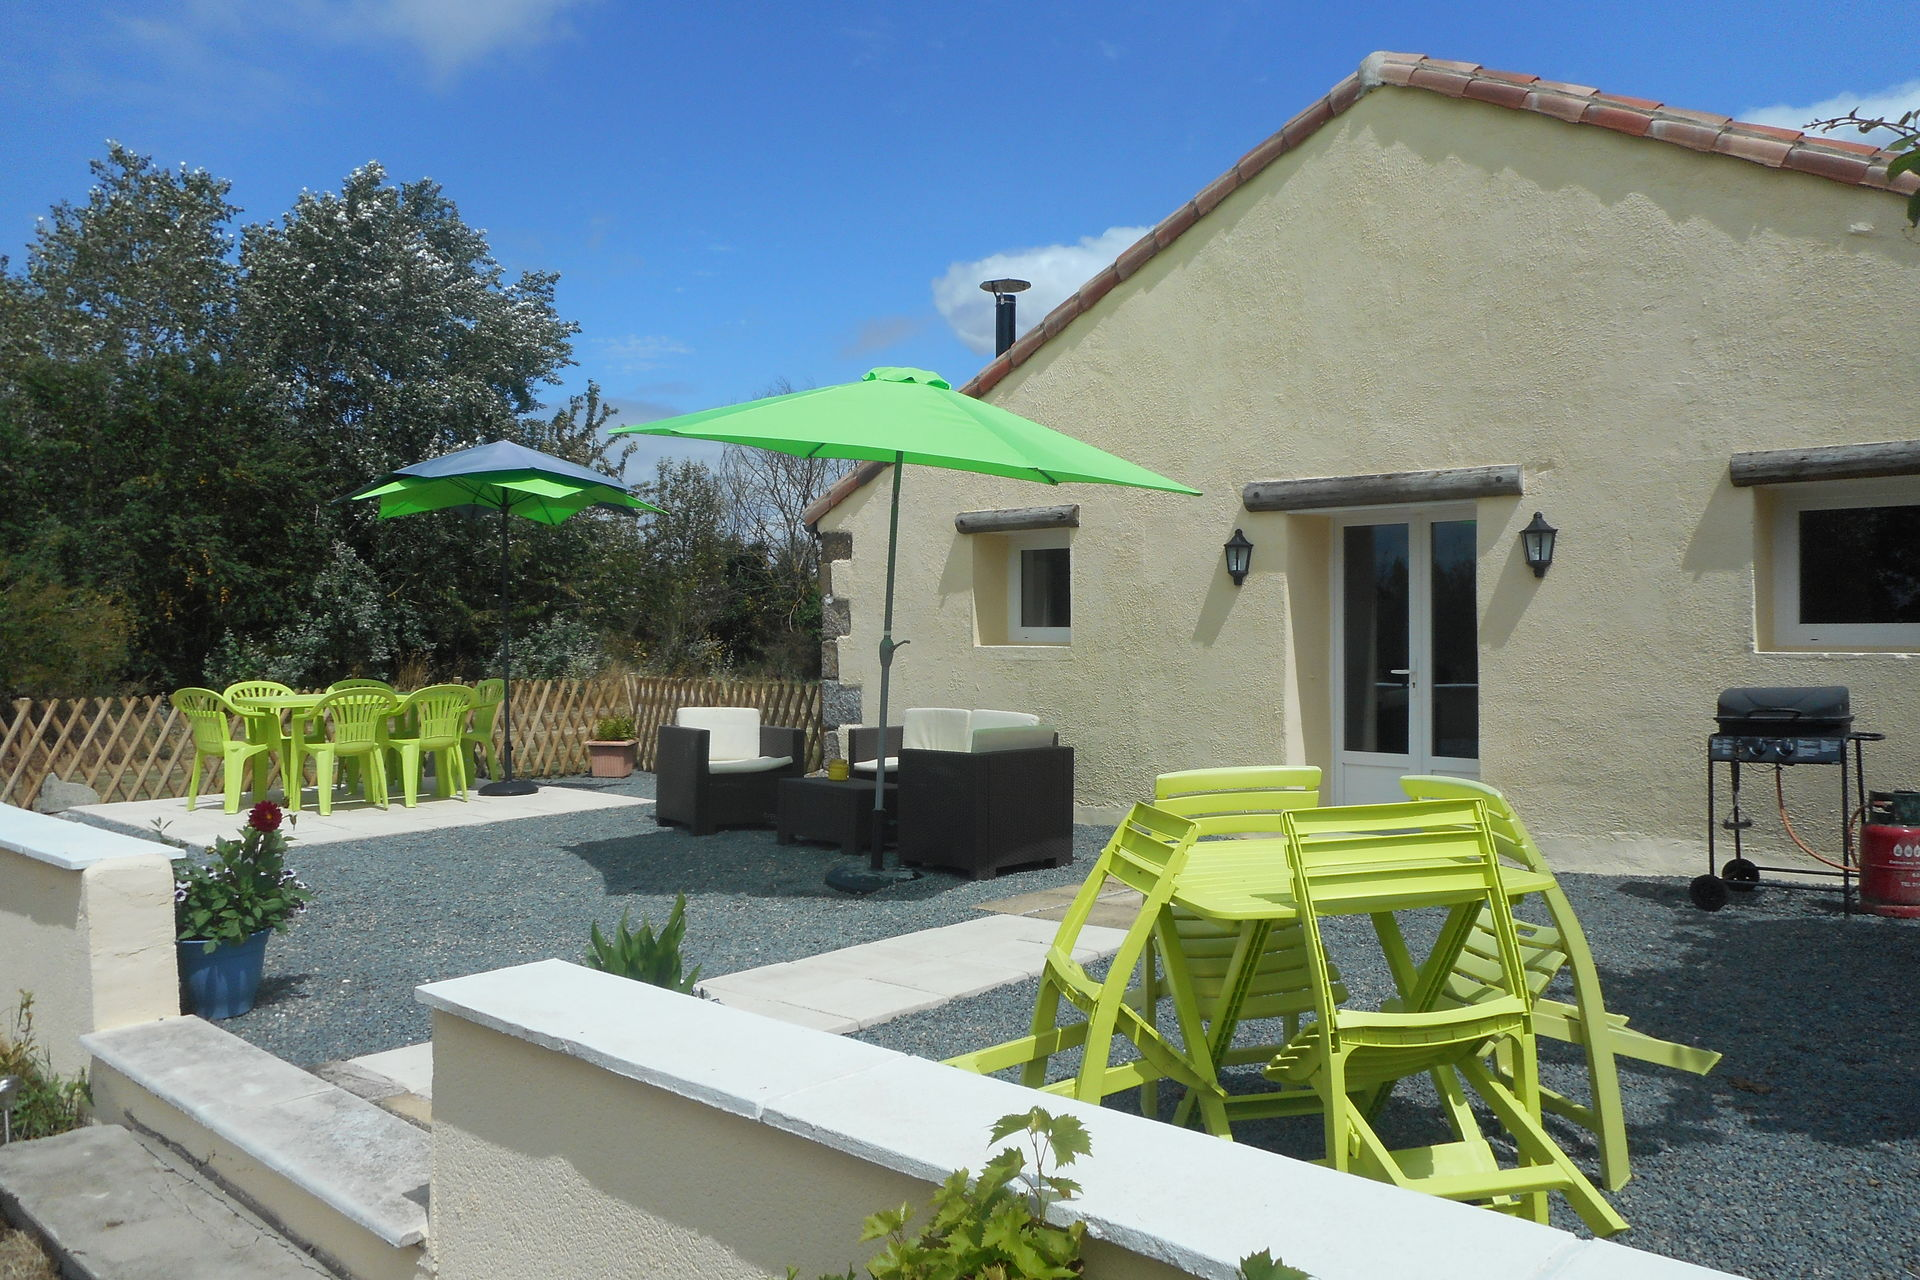 Holiday Homes In Poitou Charentes France